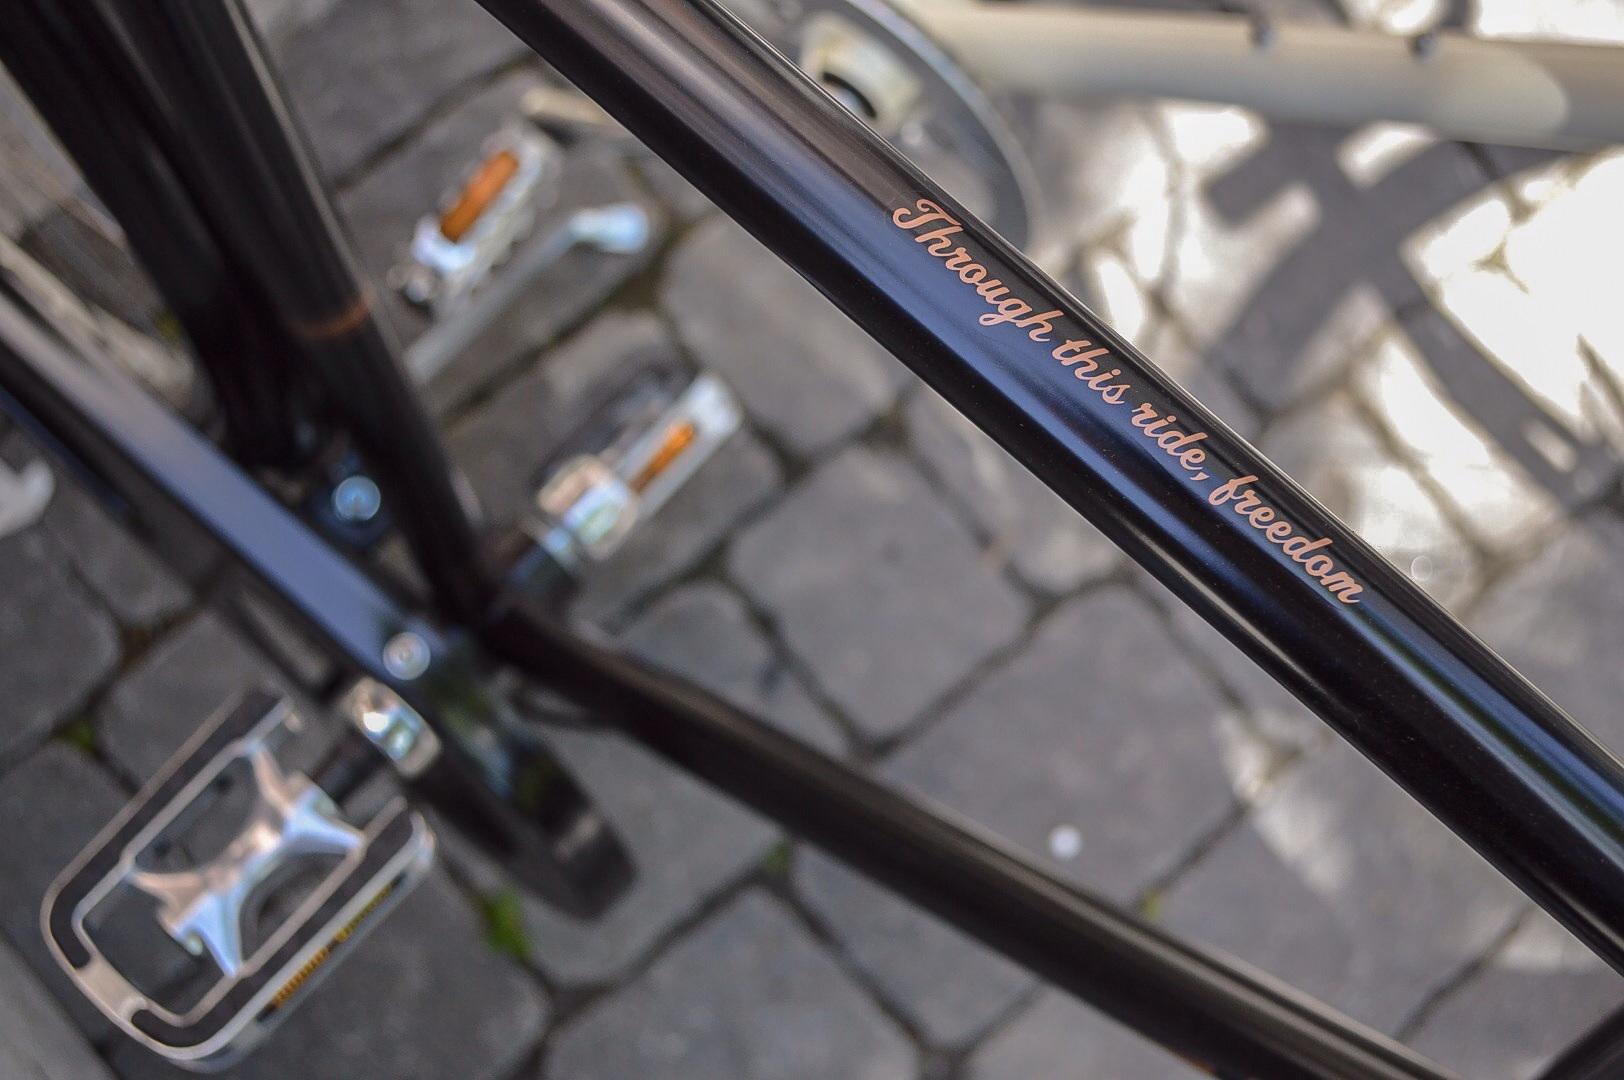 Words of wisdom painted on the top of every Simcoe Bicycle.